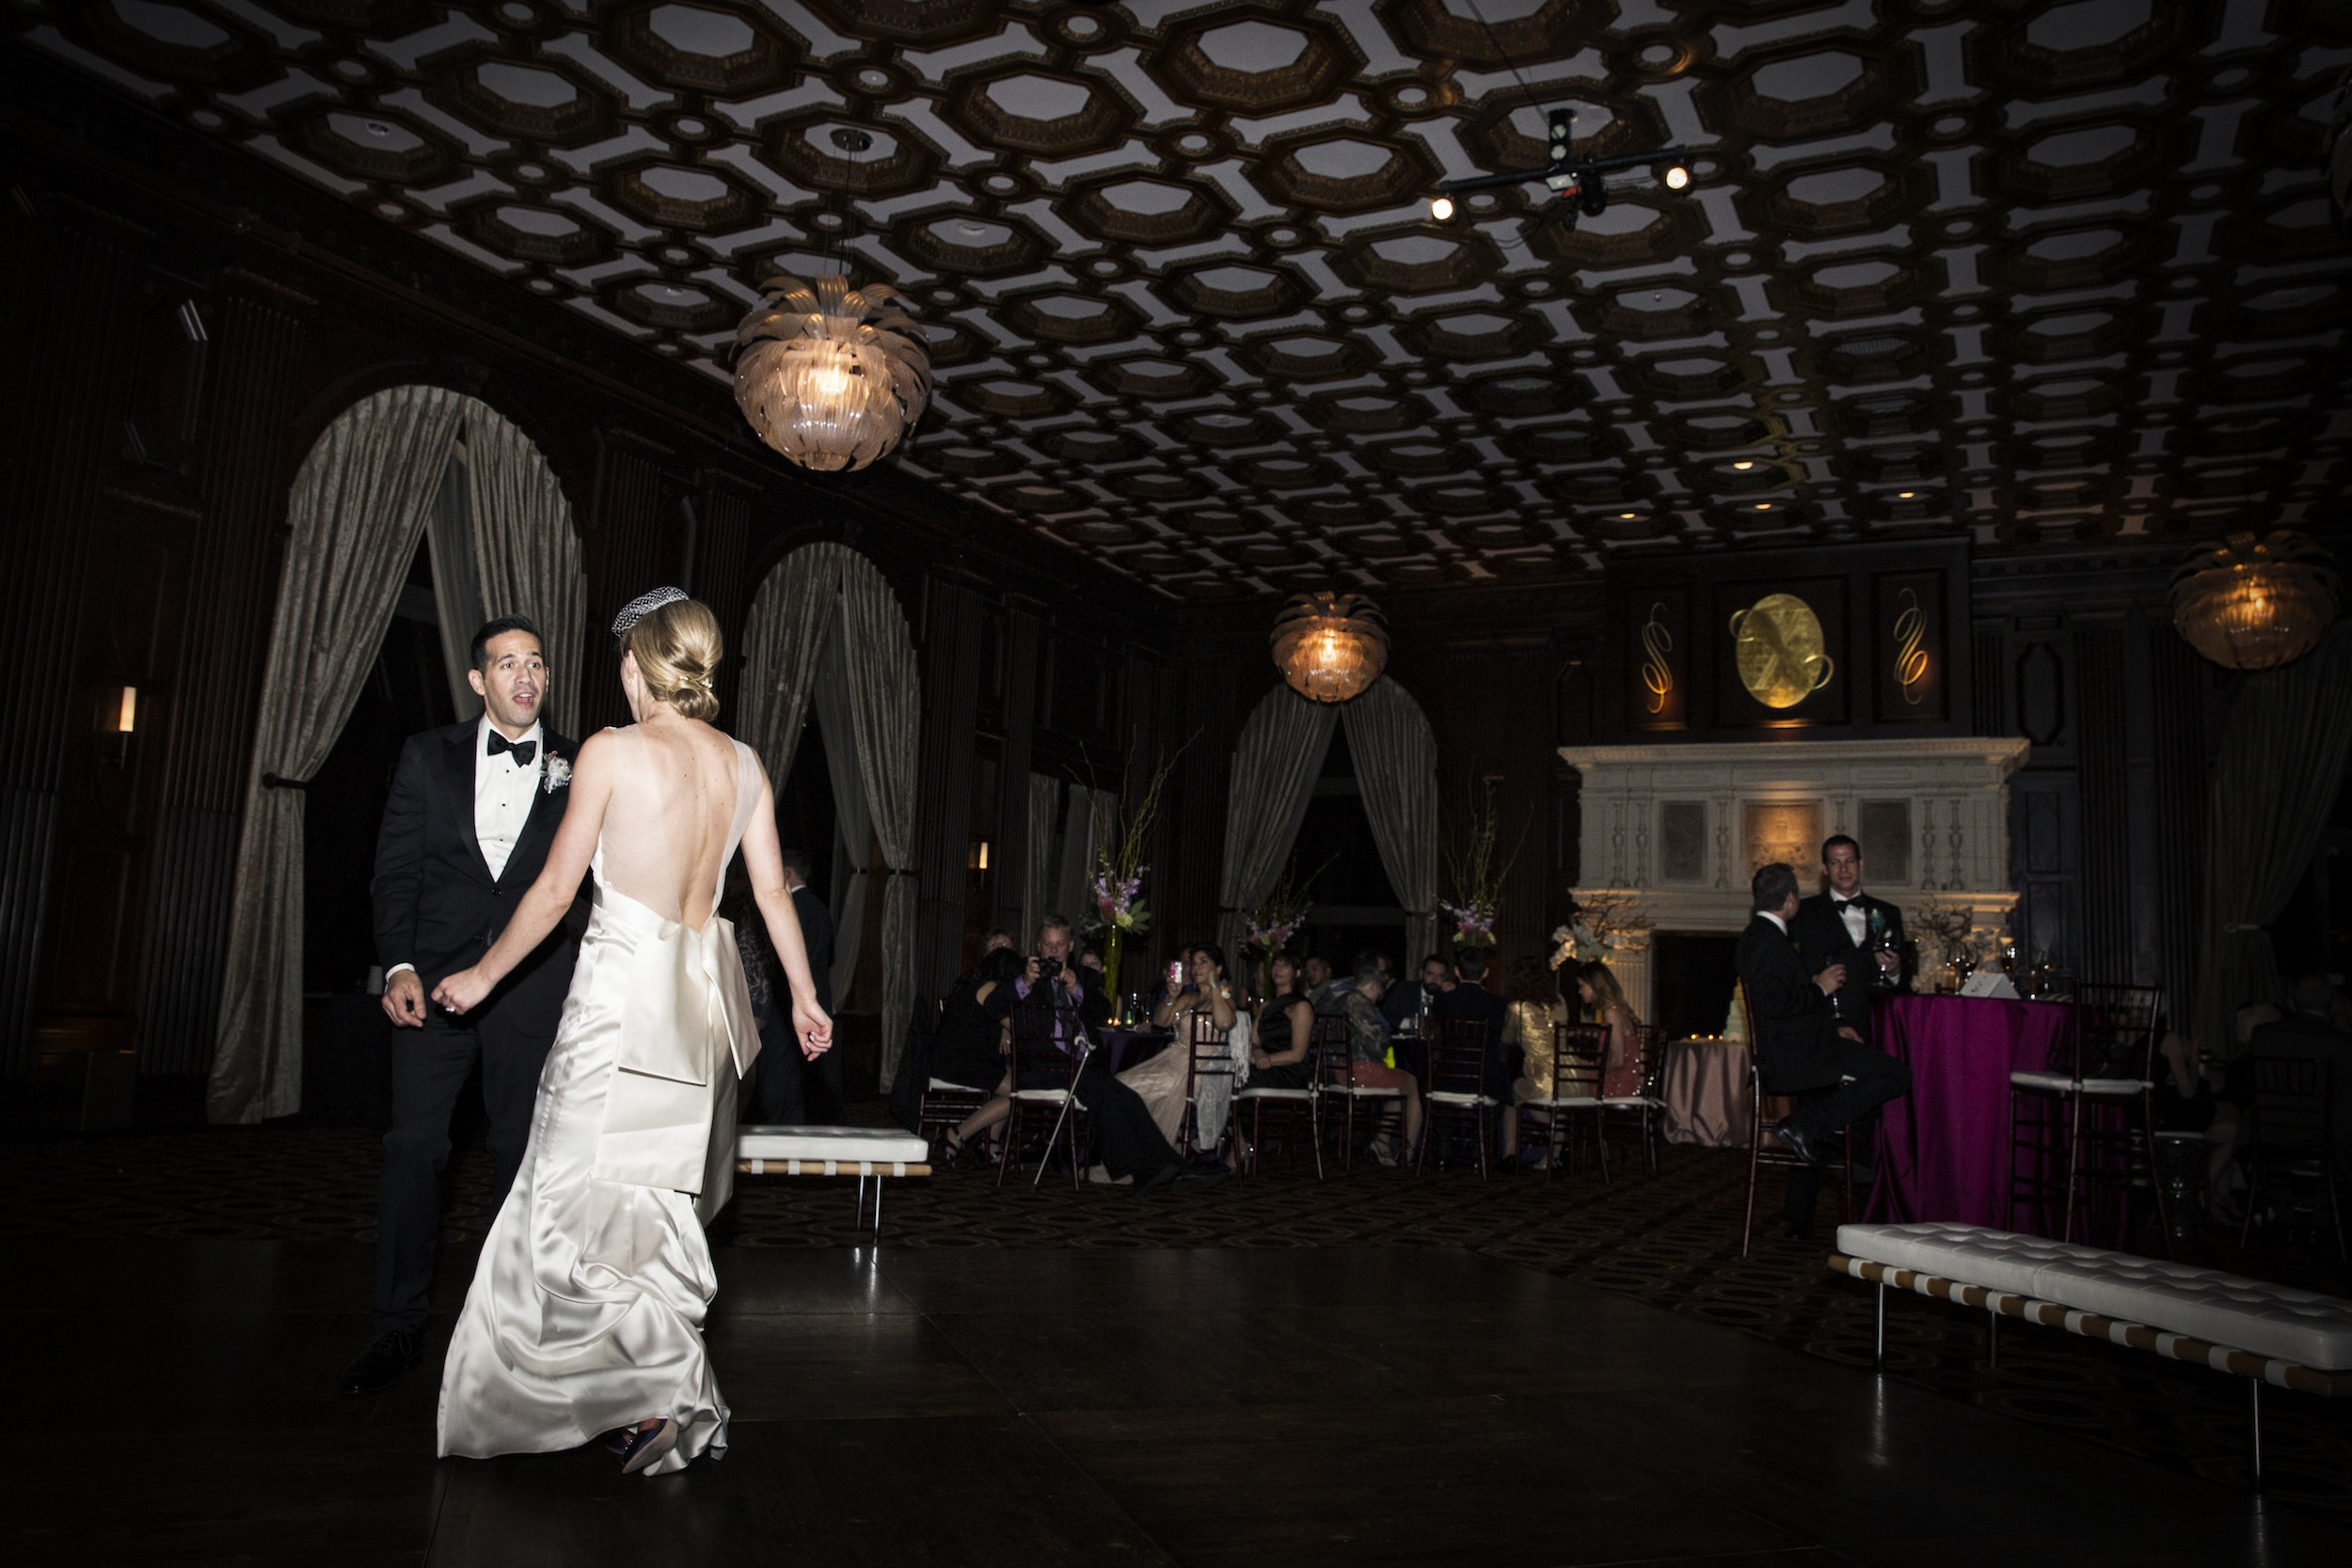 First Dance - photo by Jessica Stout